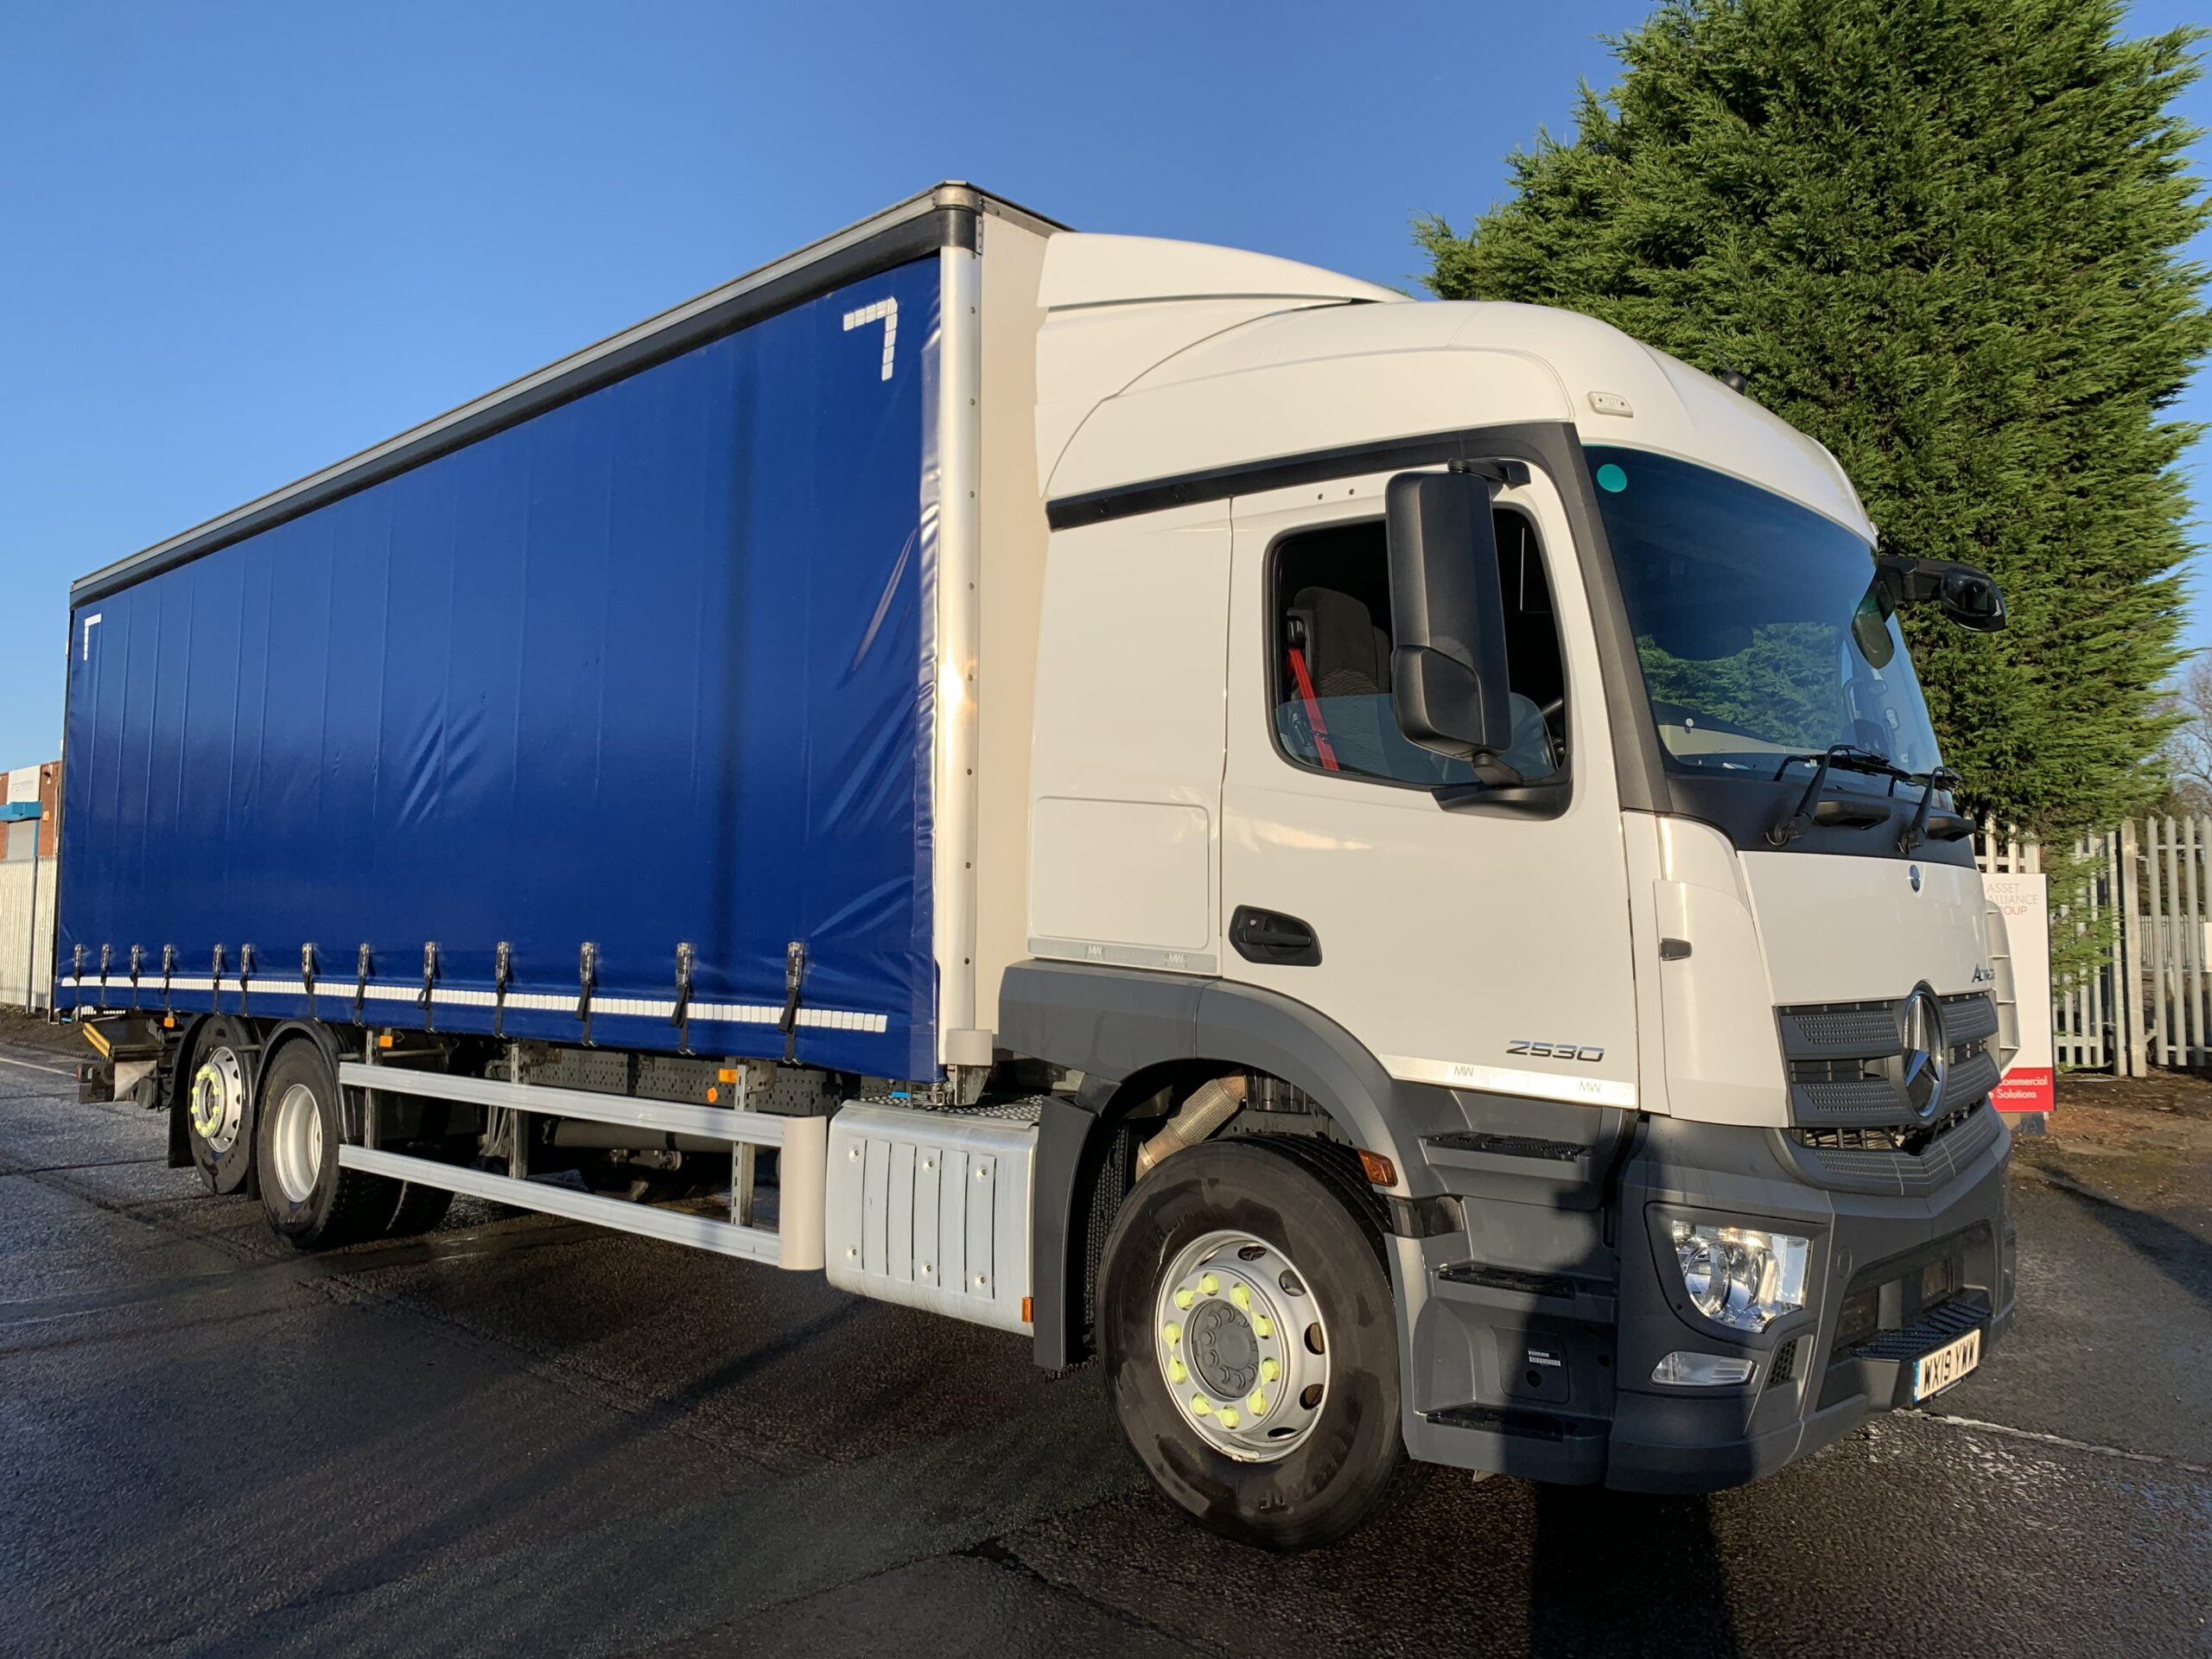 2019 Mercedes Actros 2530 Curtainsider, 26 Tonne, 300bhp, Euro 6, Automatic Gearbox, Single Sleeper Cab, Palfinger Tuckaway Tailift (1500KG Capacity), Barn Doors, Steering Wheel Controls, Sun Roof, Low Mileage, Warranty also Available.